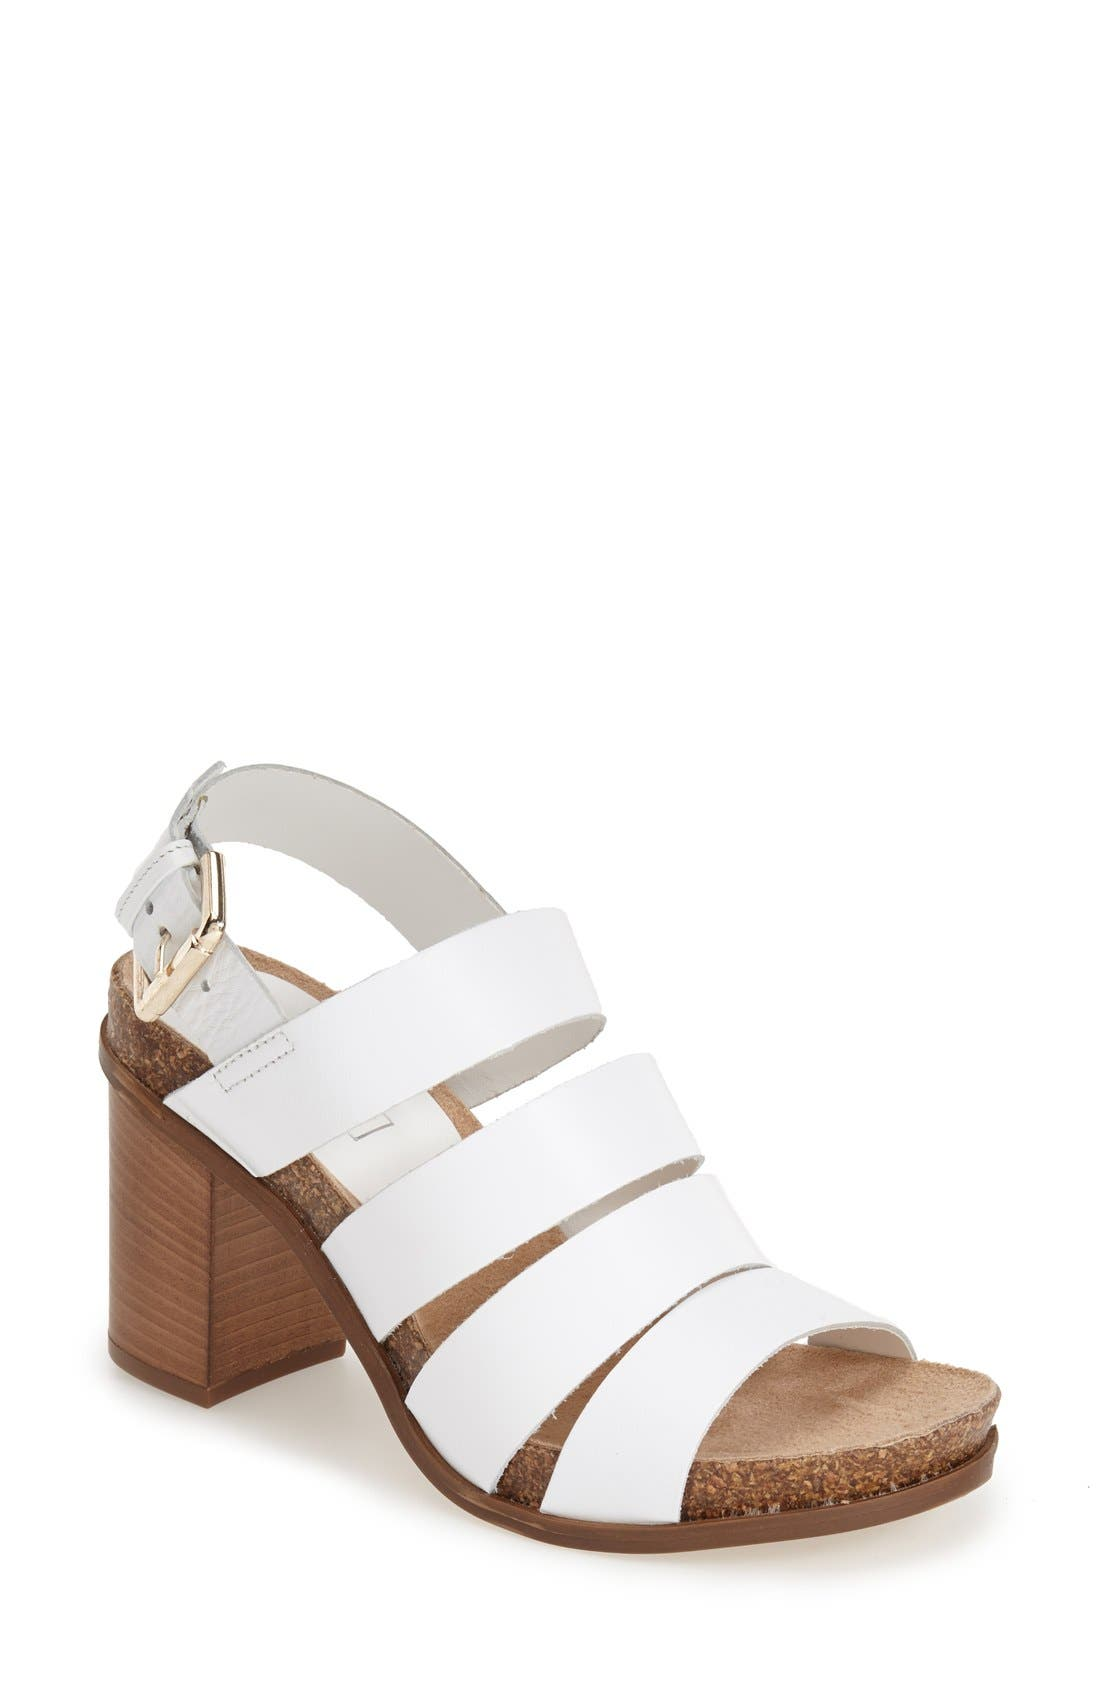 Alternate Image 1 Selected - Topshop 'Nickname' Sandal (Women)